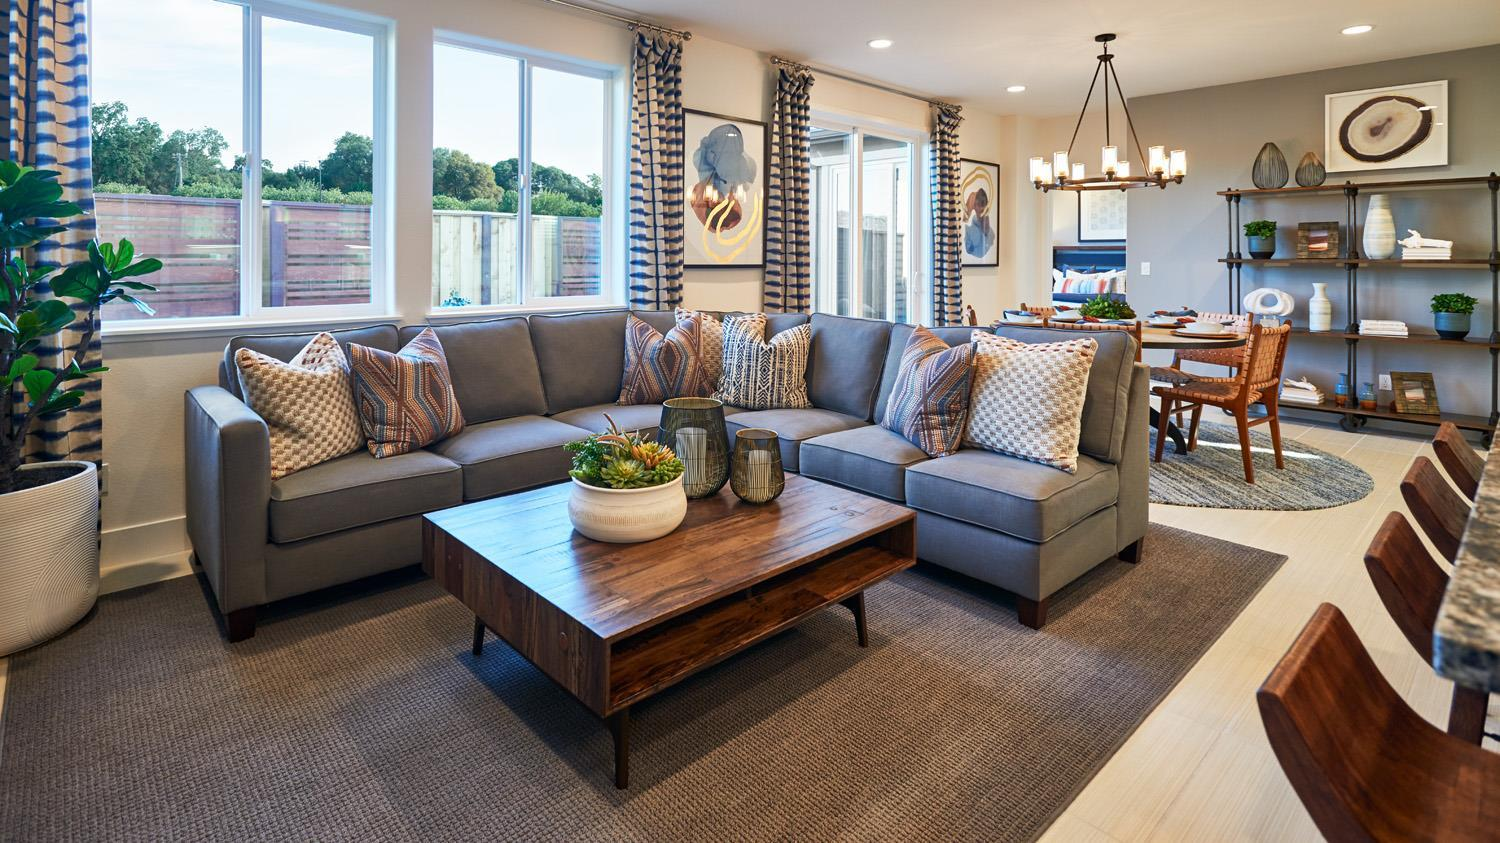 Living Area featured in the Residence 4 By Signature Homes CA in Santa Rosa, CA